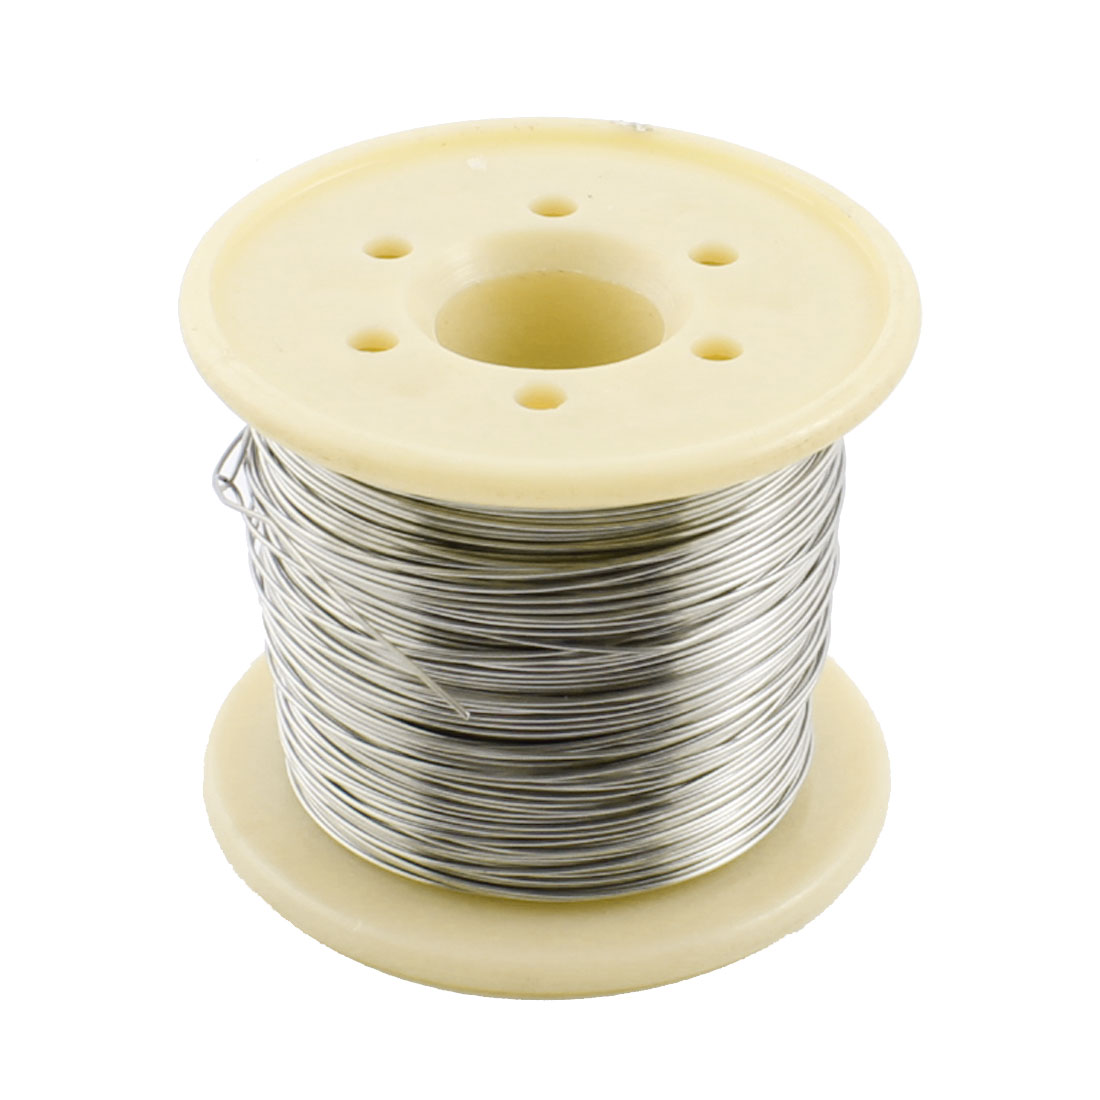 30Meter Length 0.5mm AWG24 Gauge Nichrome Resistance Heating Coils Resistor Wire for Frigidaire Heater